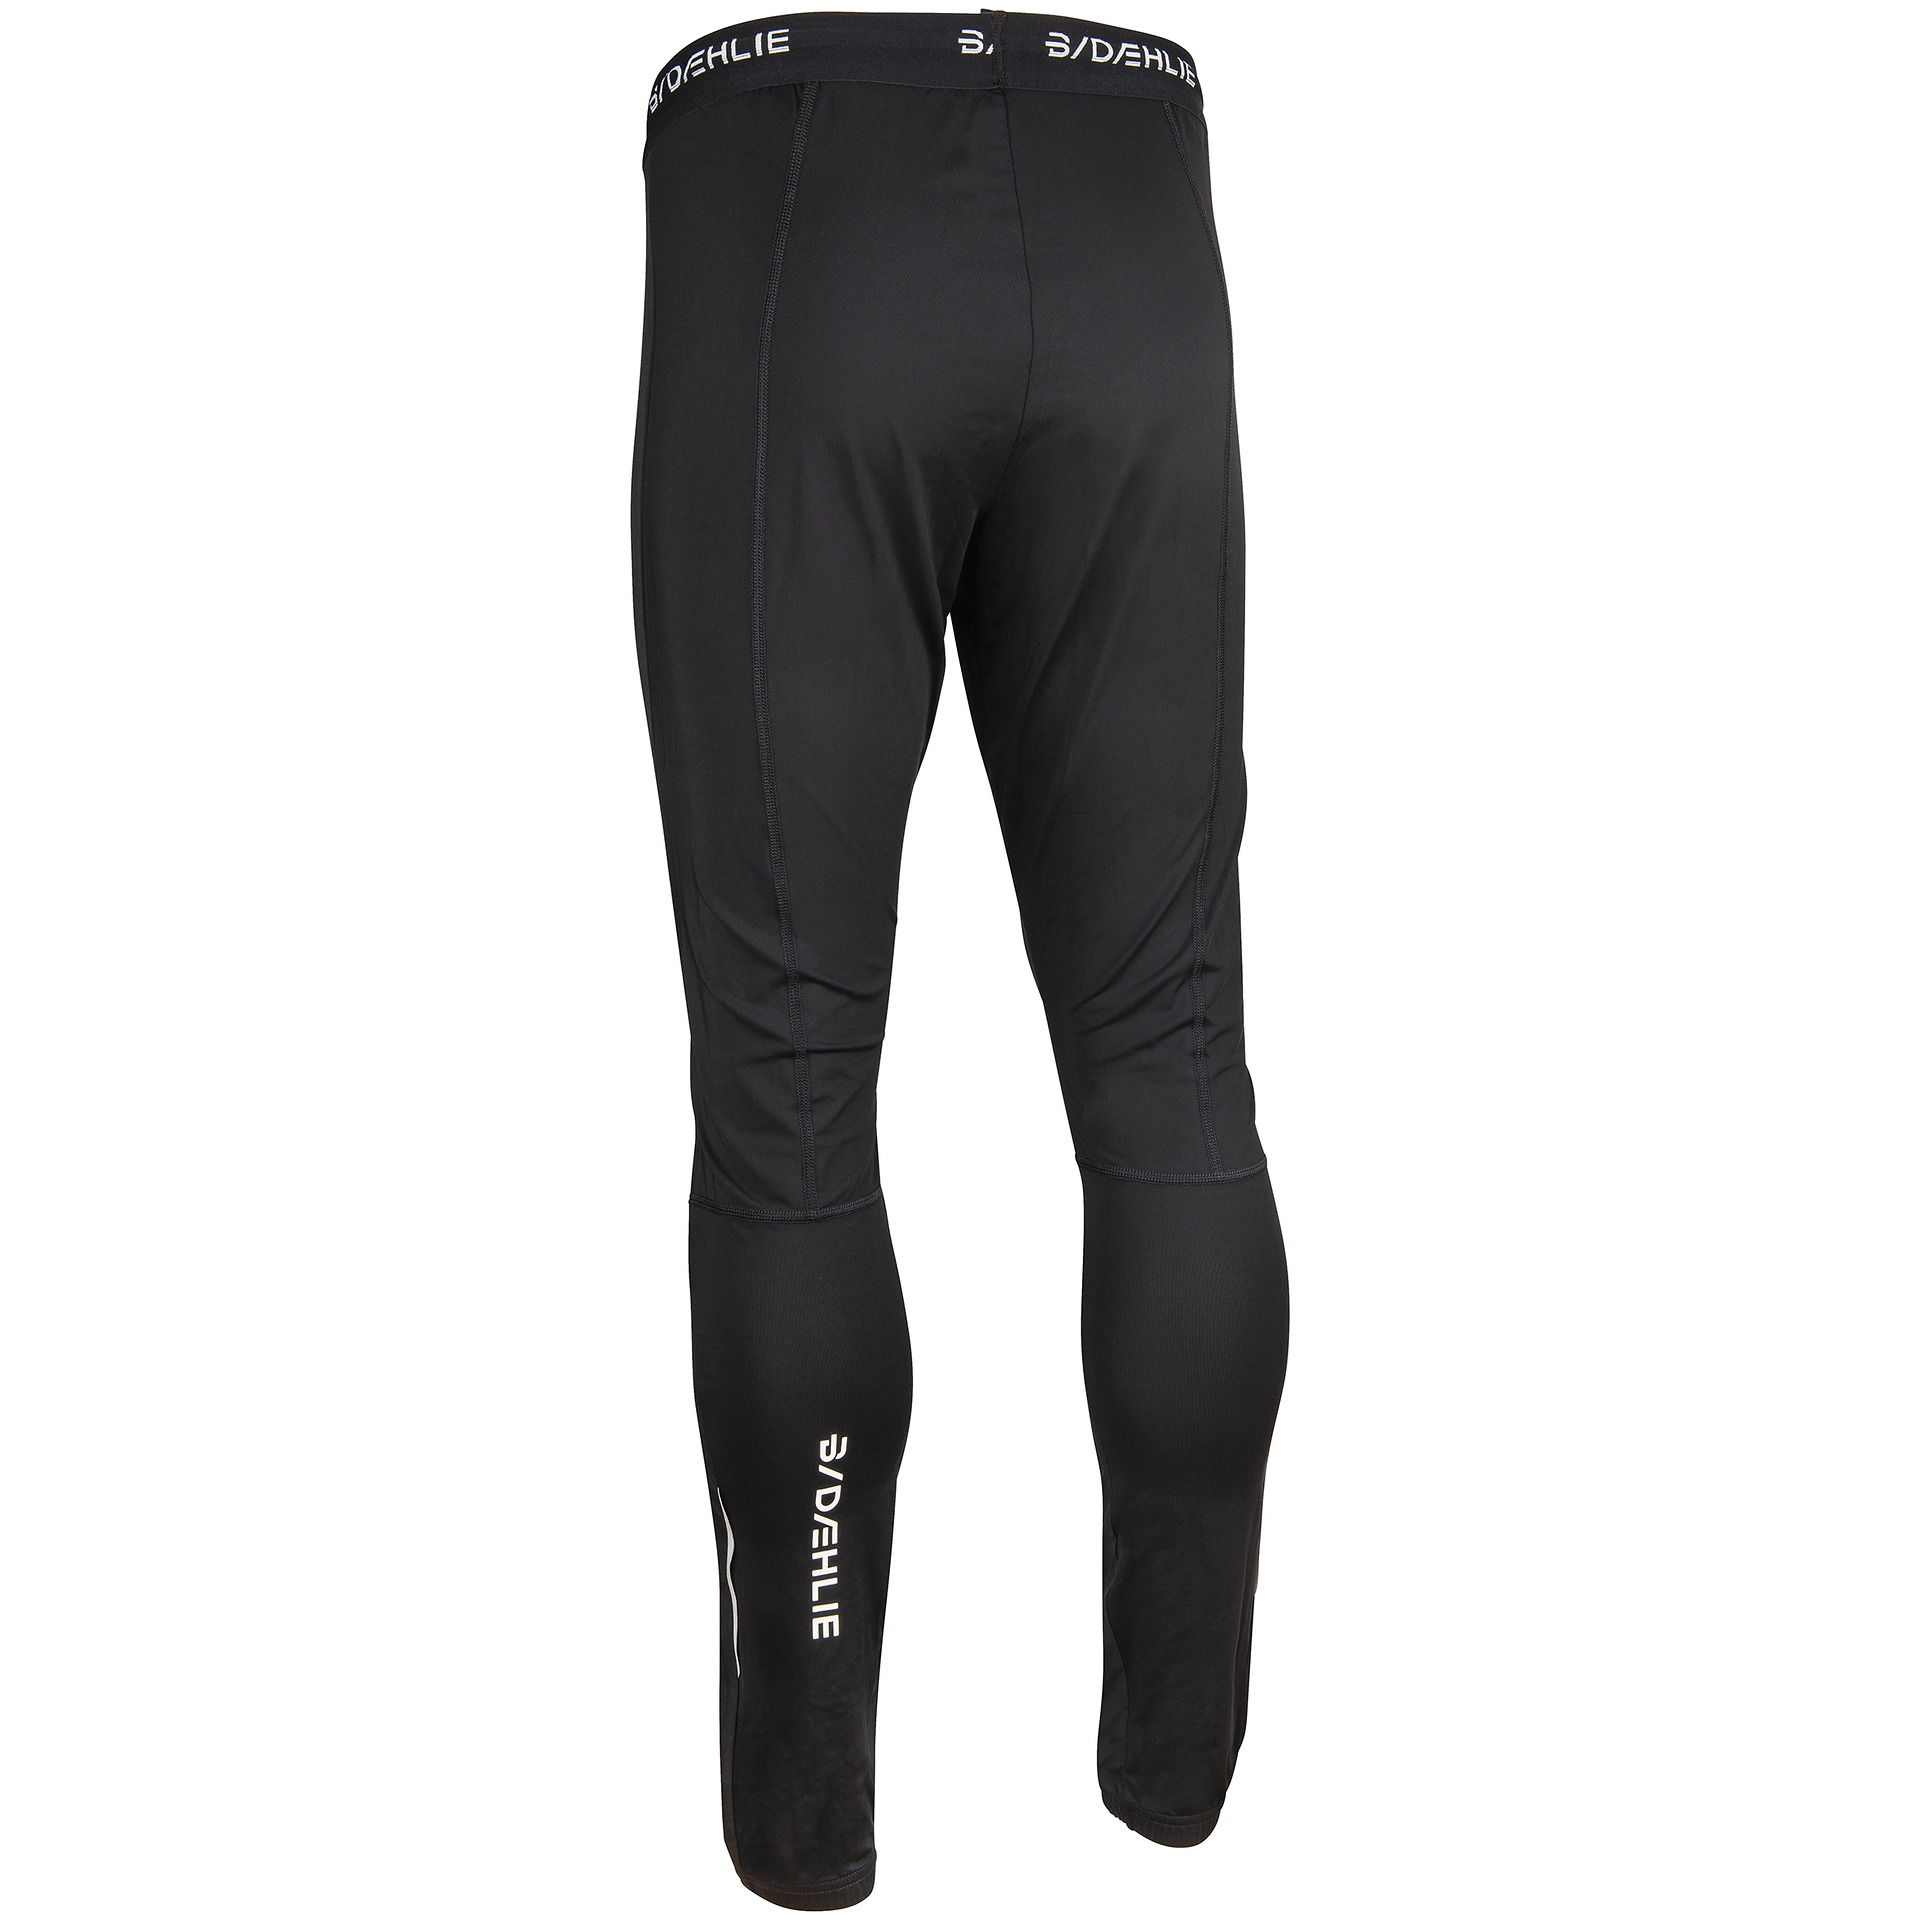 Bilde av Dæhlie pants air 332214 9990R black